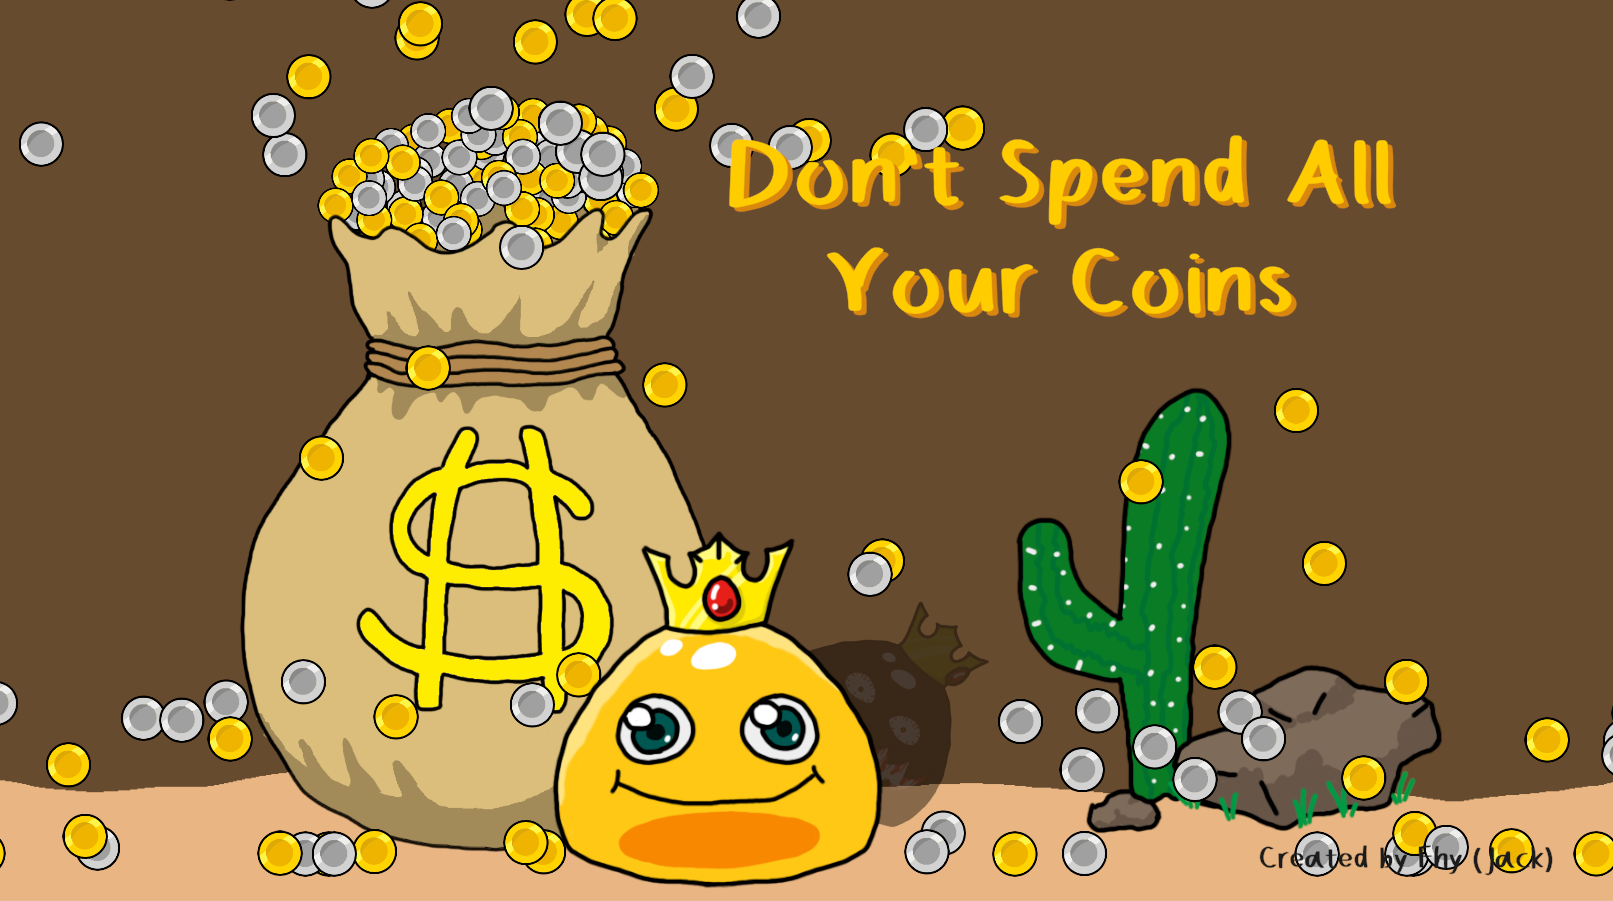 Don't Spend All Your Coins